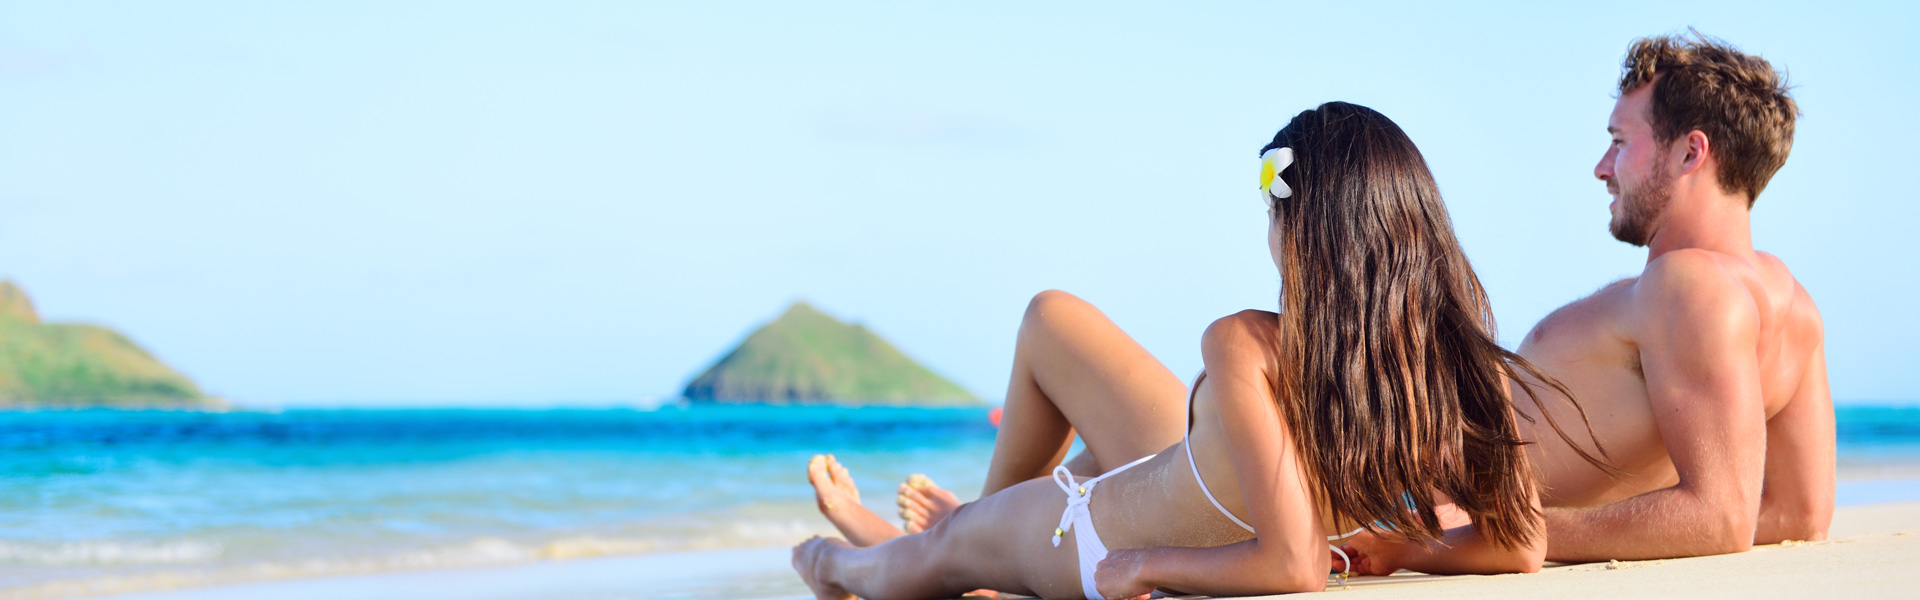 bigstock-Beach-sun-tan-couple-relaxing-82215002_1920x600